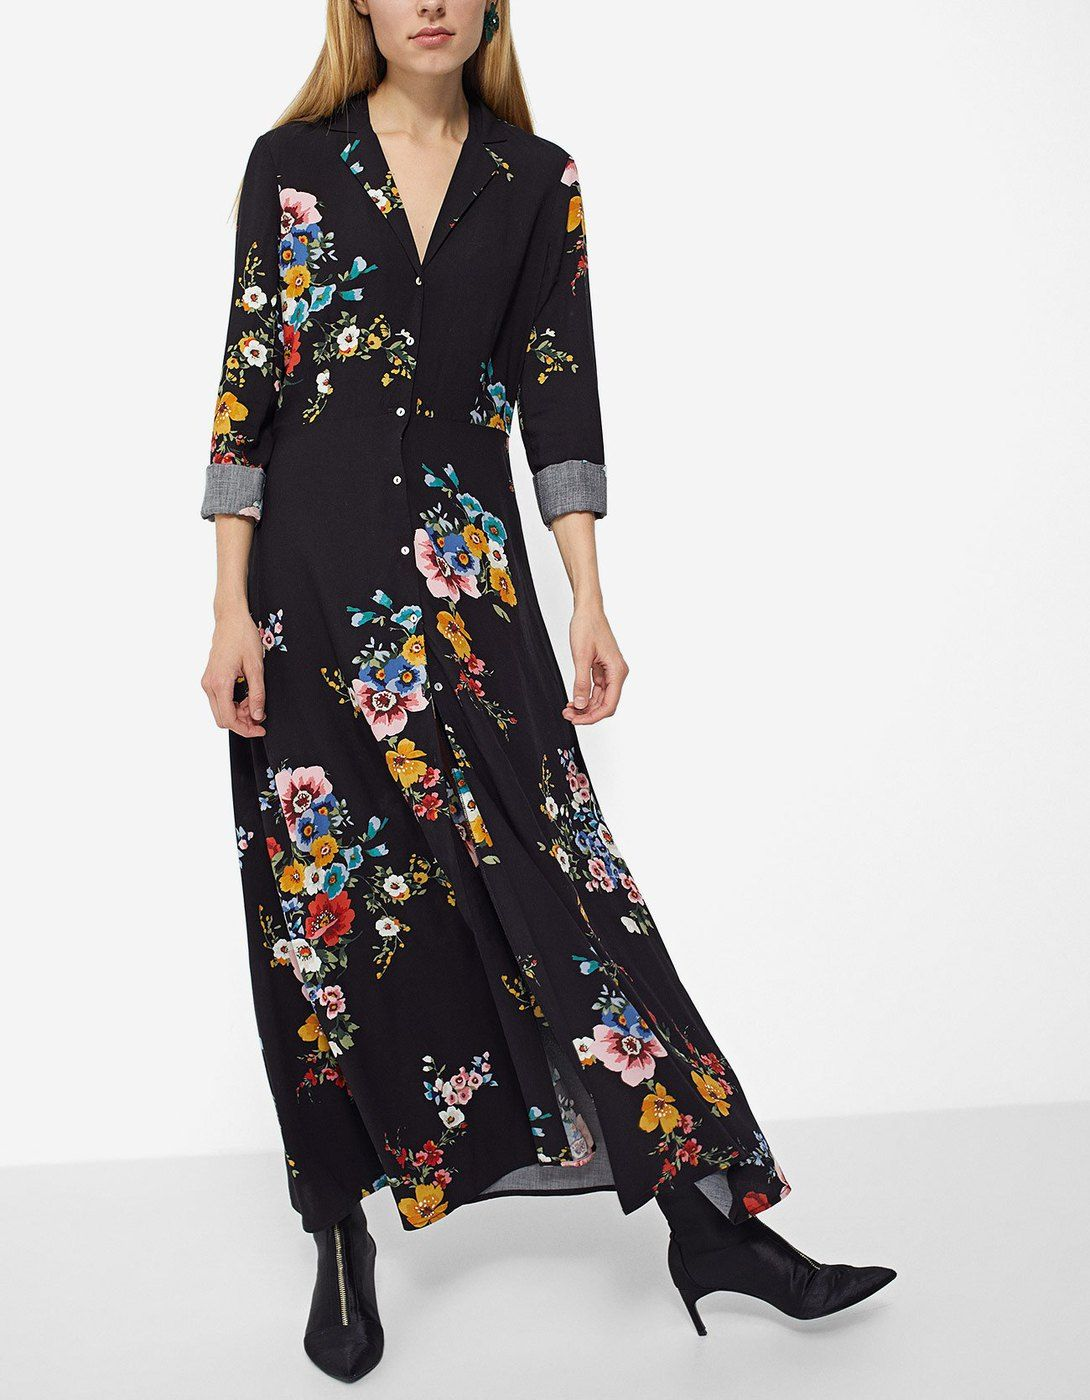 46fb16f697 At Stradivarius you ll find 1 Vestido camisero flores largo for just 699  Mexico . Visit now to discover this and more Vestidos.